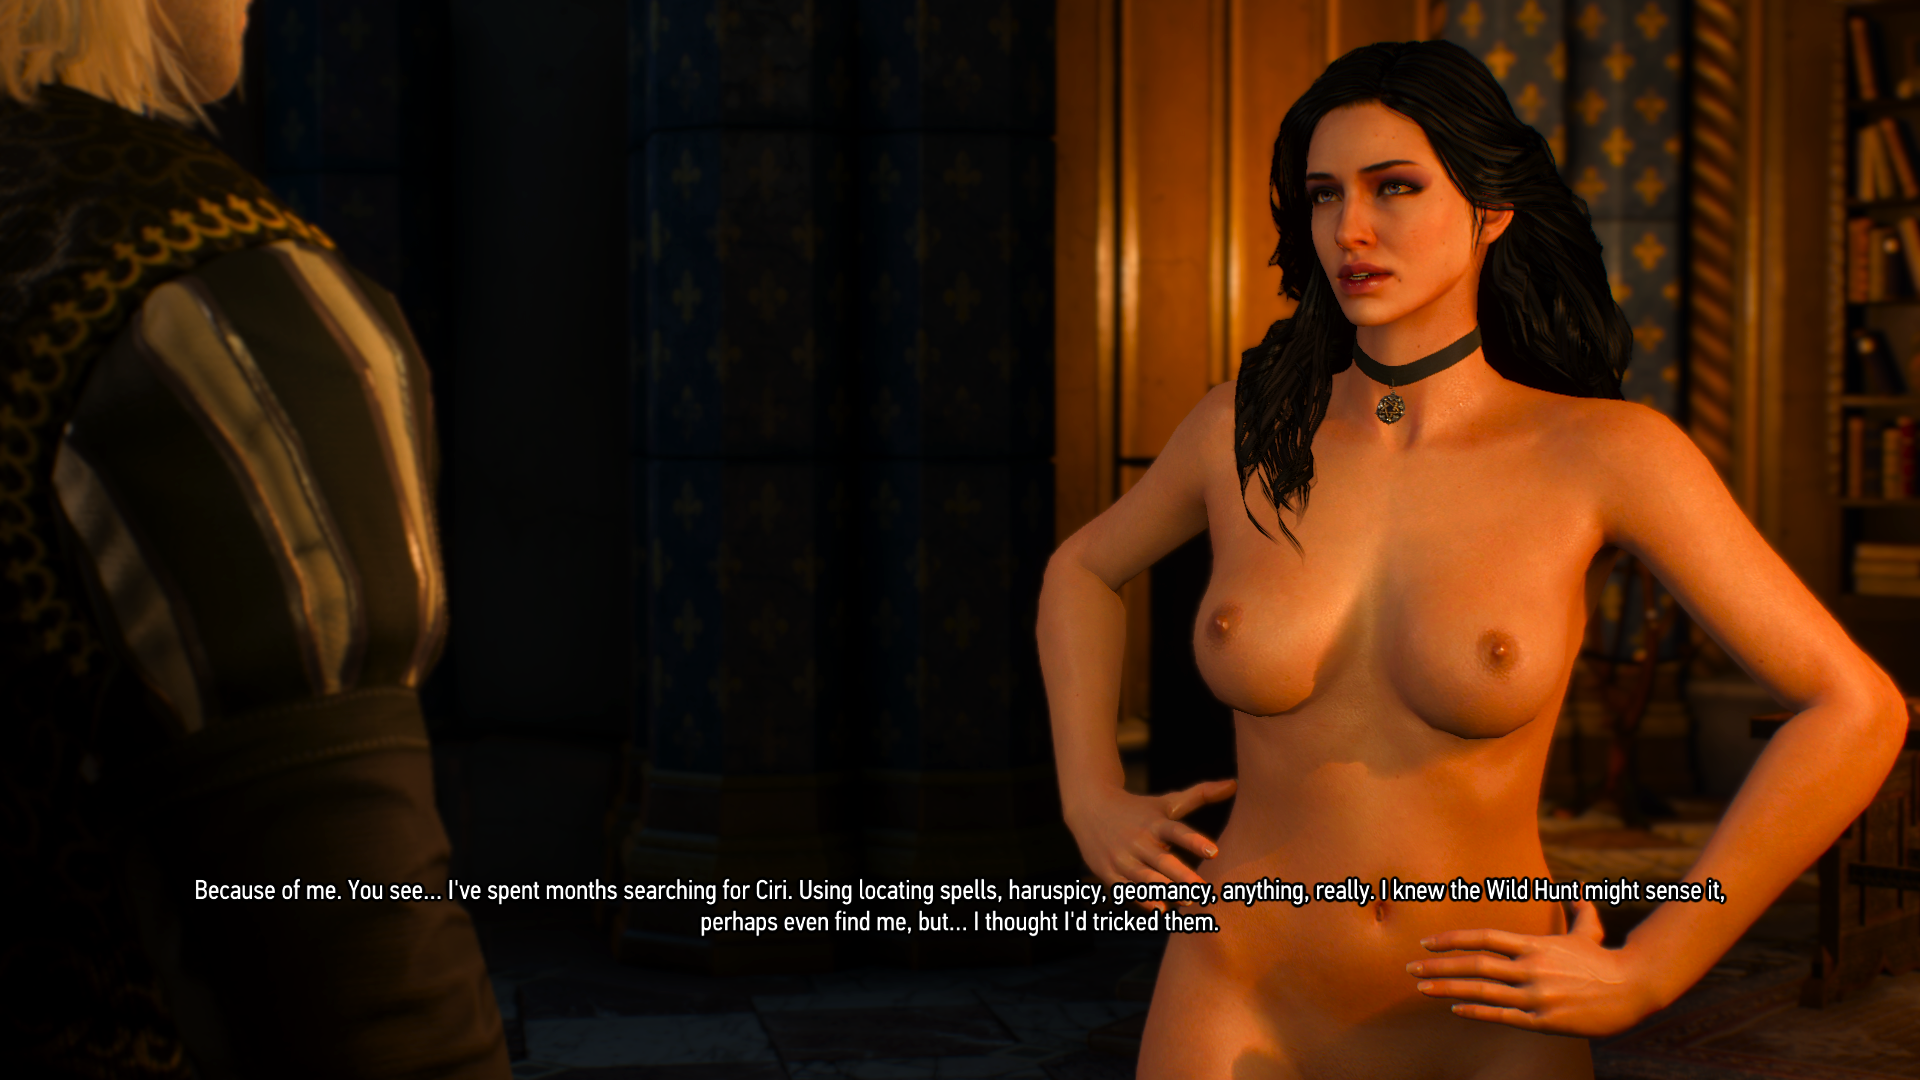 3 the naked witcher yennefer The Witcher's